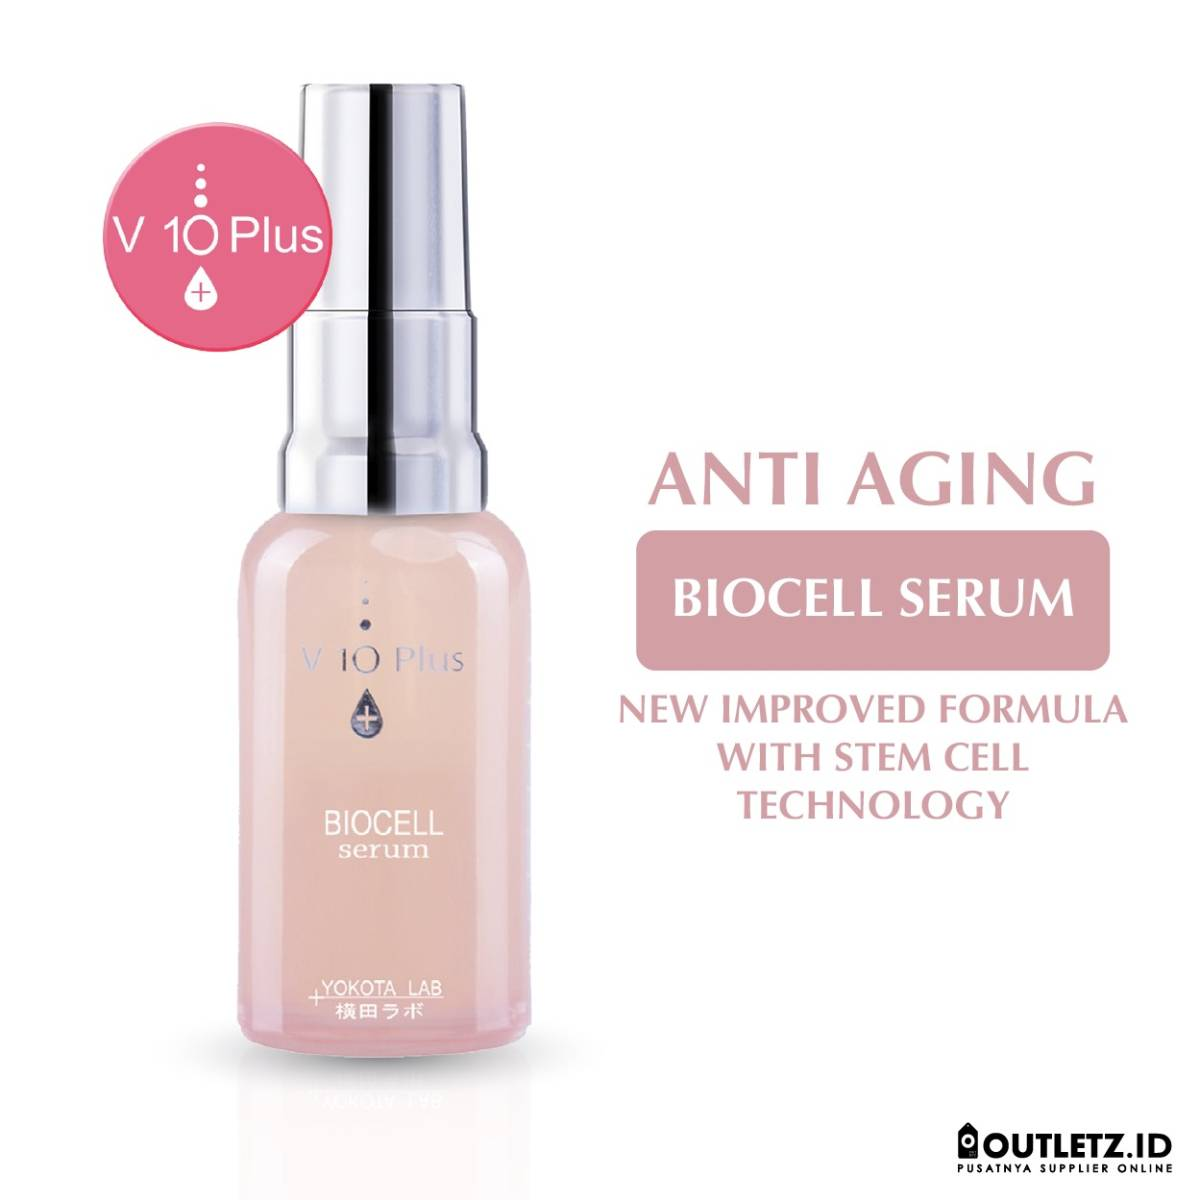 V10 Plus Biocell Serum0